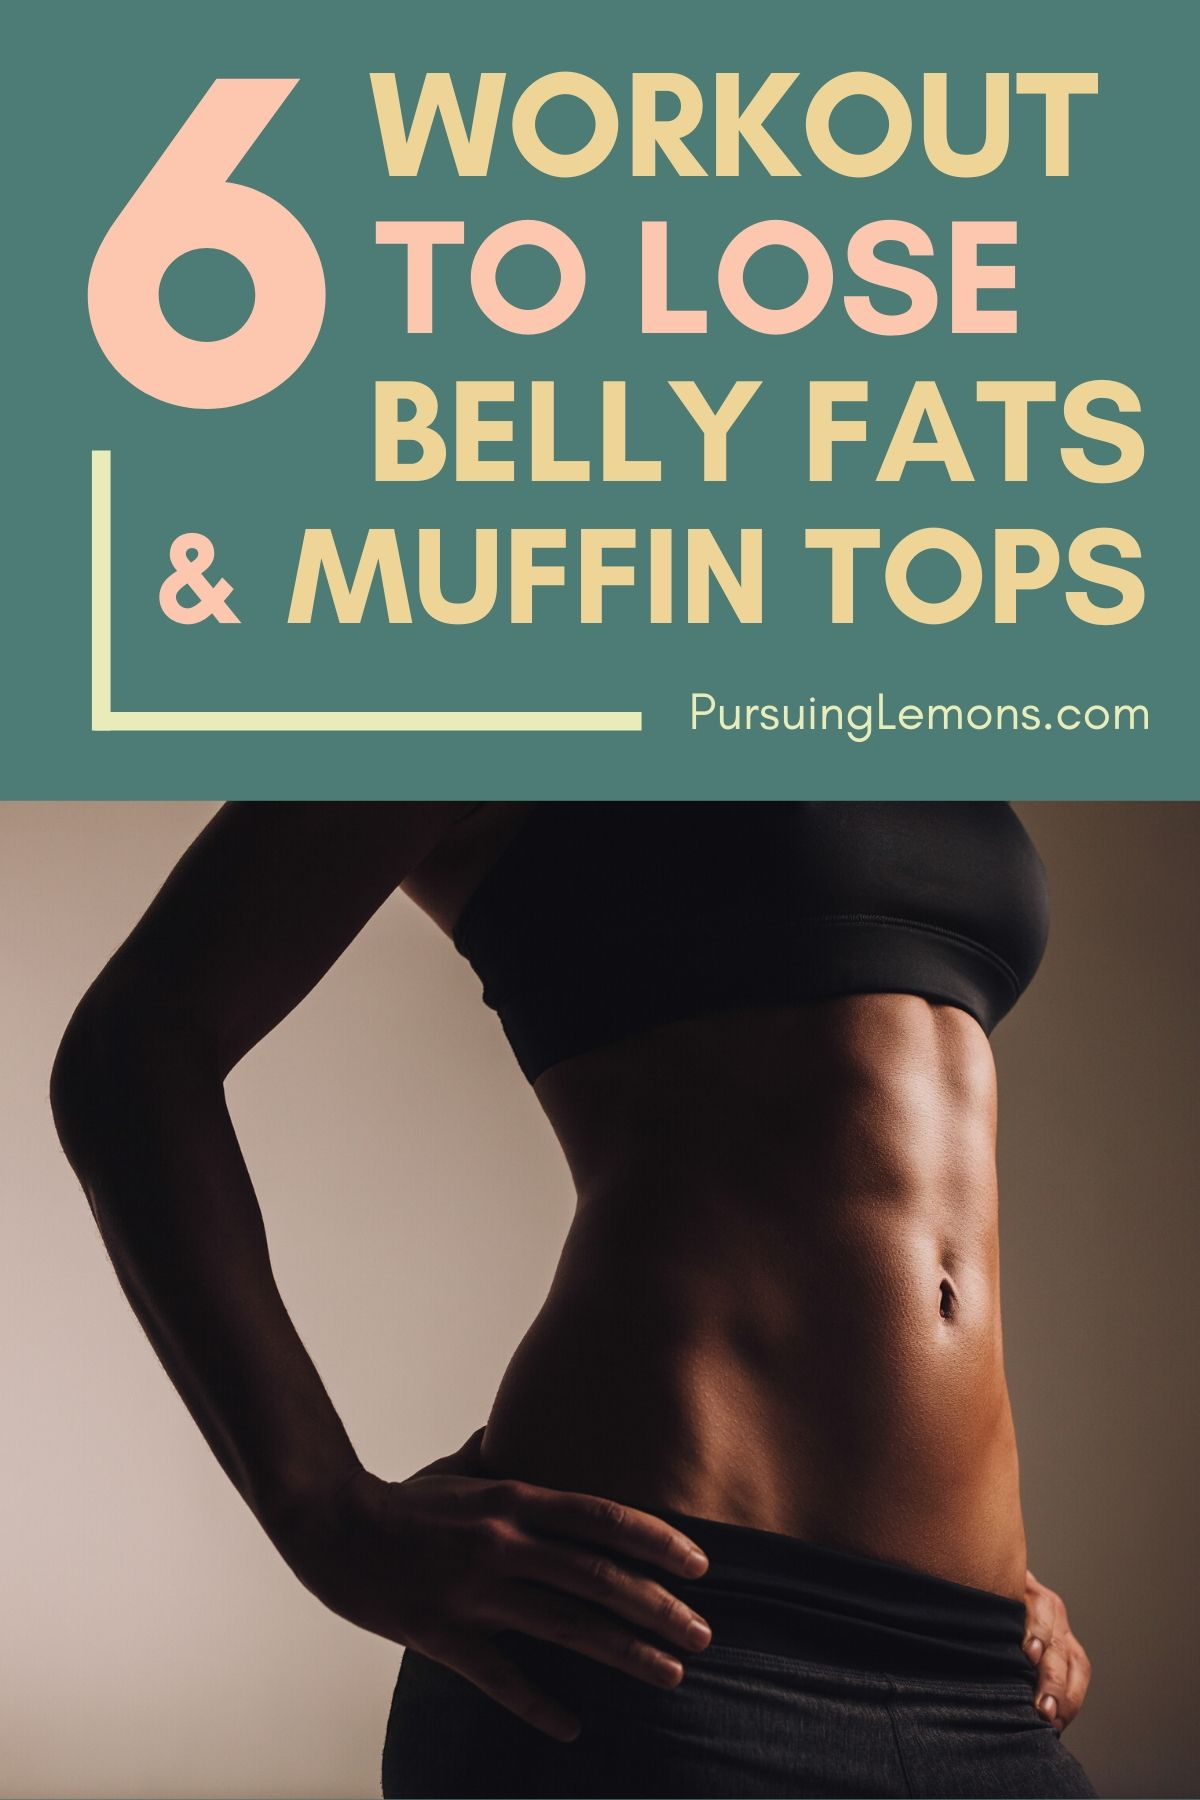 6 Workouts To Lose Belly Fats and Reduce Muffin Tops | Do you want to lose your love handles and muffin top? Then you need to start working on those abs right now with this workout! #losebellyfat #workout #workoutathome